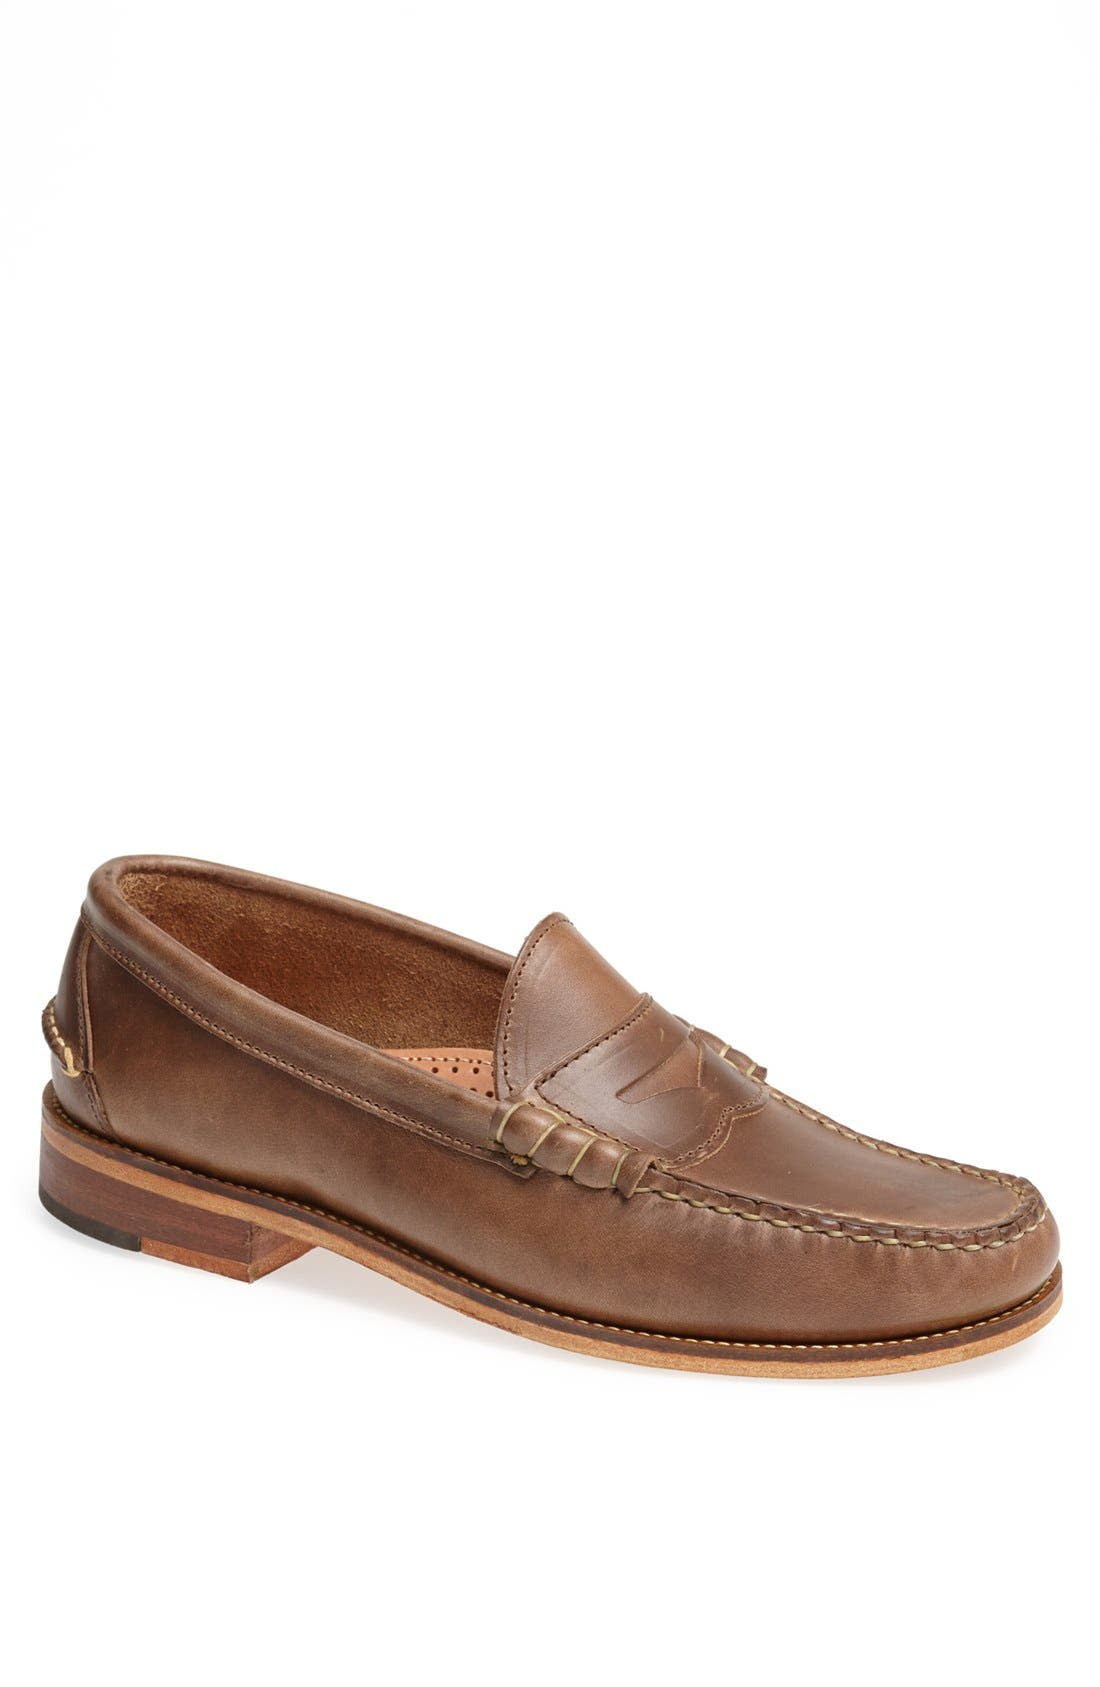 Beefroll Penny Loafer,                         Main,                         color, NATURAL BROWN